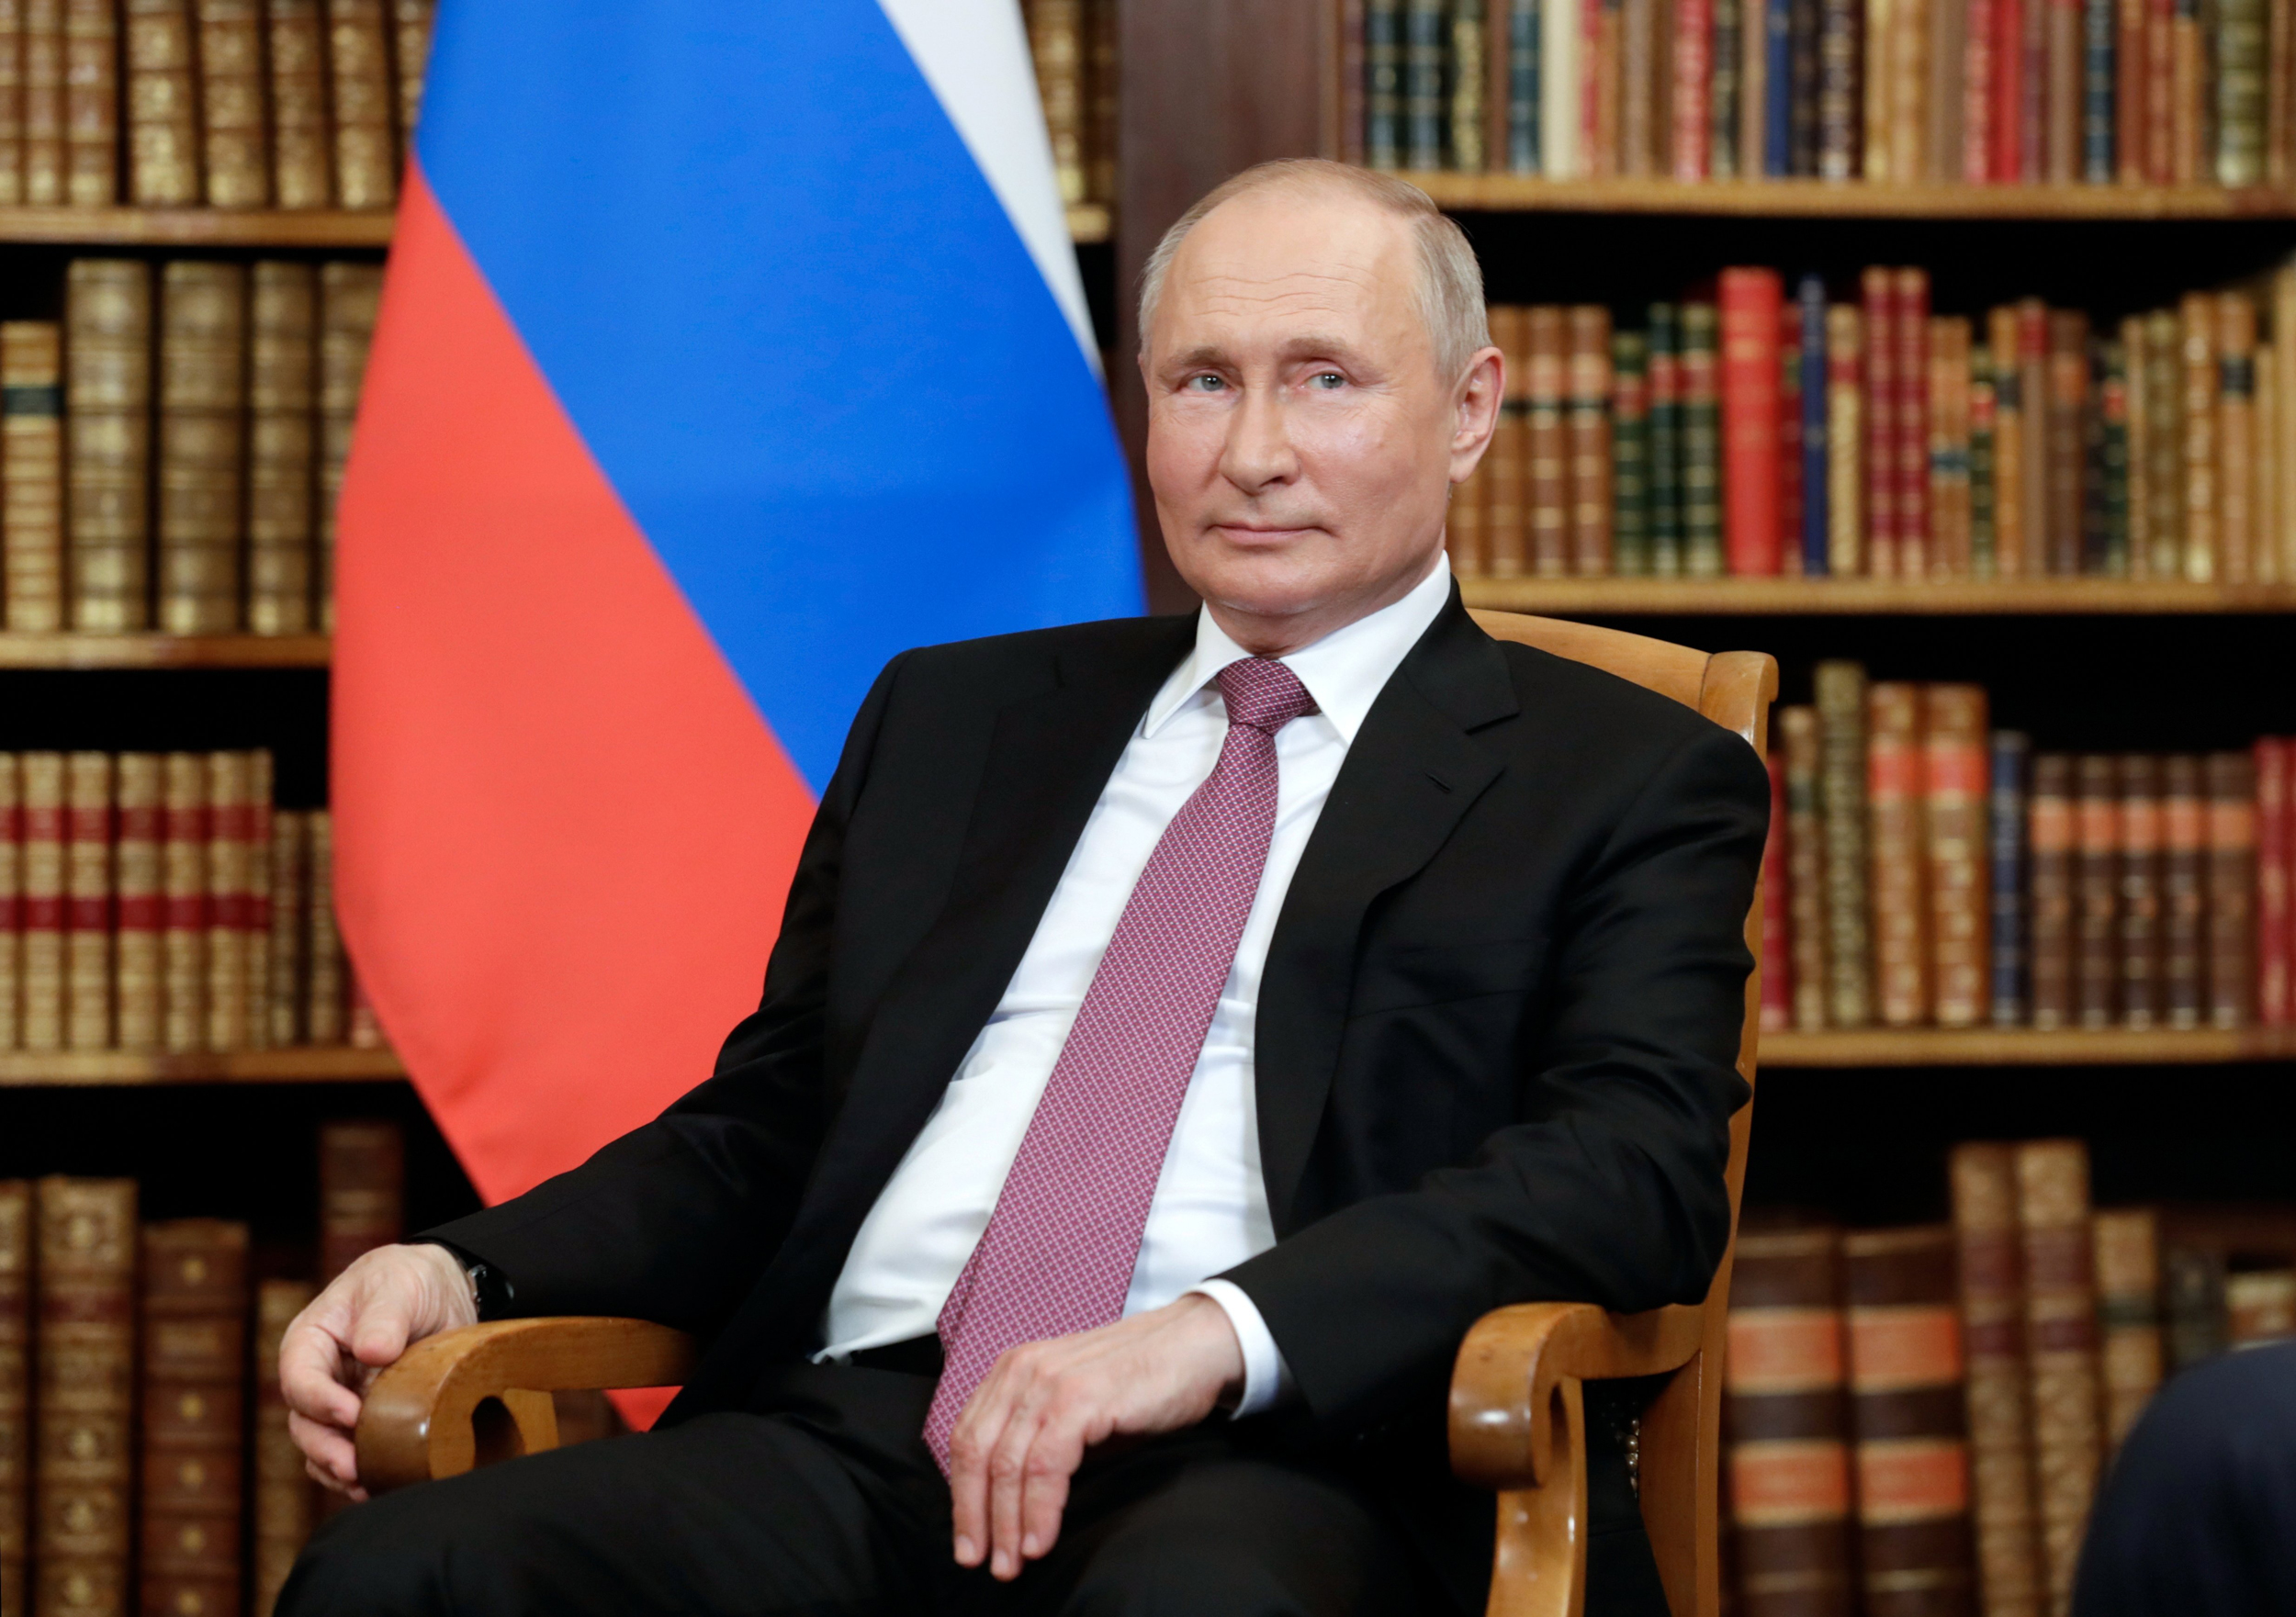 The right rediscovers its admiration for Vladimir Putin